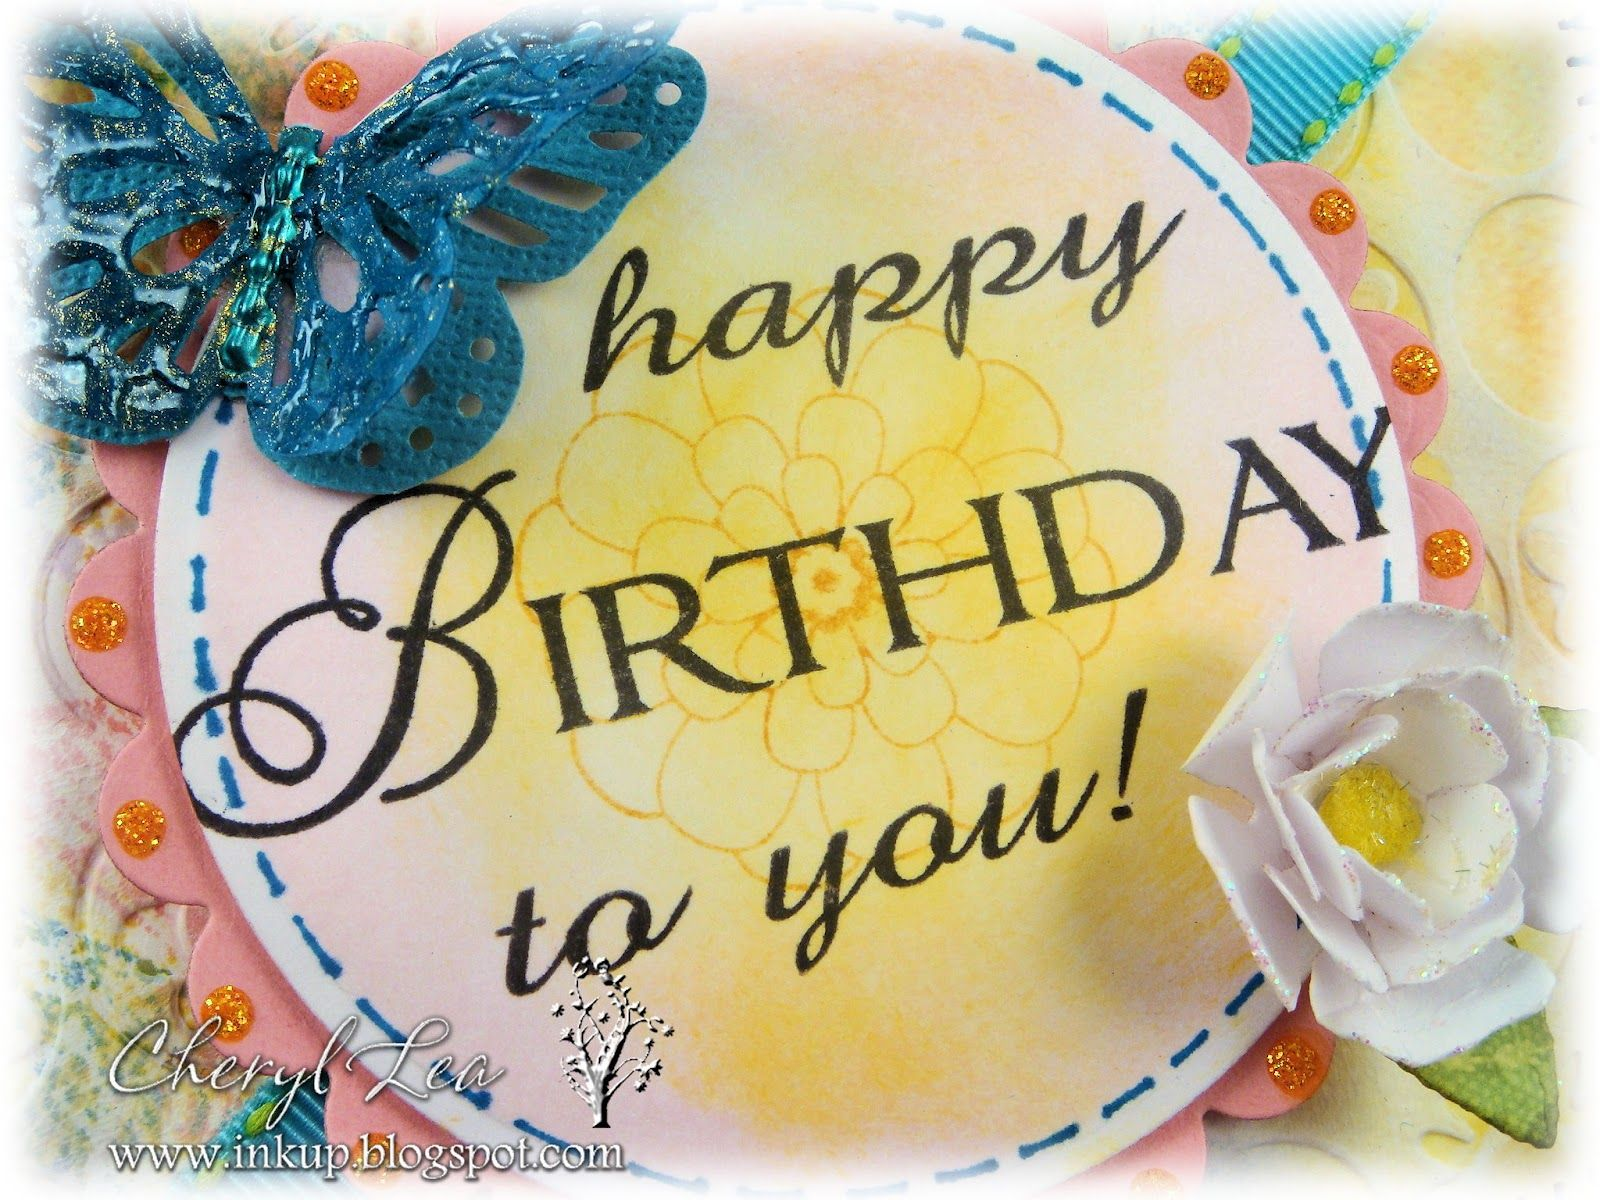 Happy birthday friend flowers happy birthday pinterest cake birthdays are special obviously so you want the flowers that you send to also be as special sending flowers for someones birthday shoul izmirmasajfo Image collections